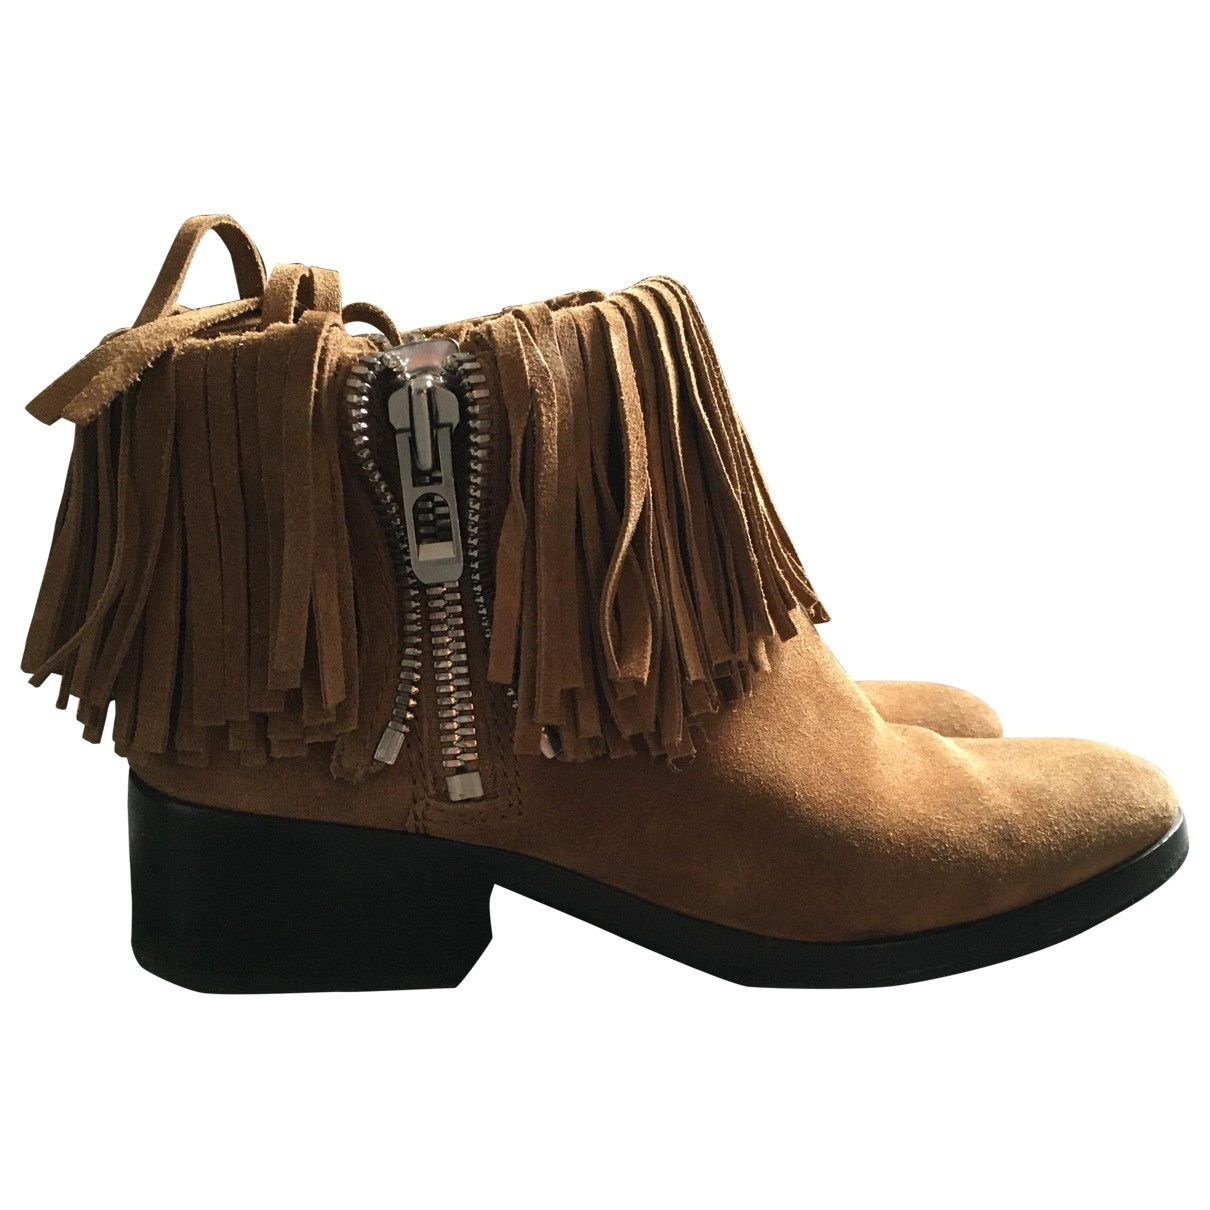 3.1 Phillip Lim \N Brown Suede Ankle boots for Women 37 EU